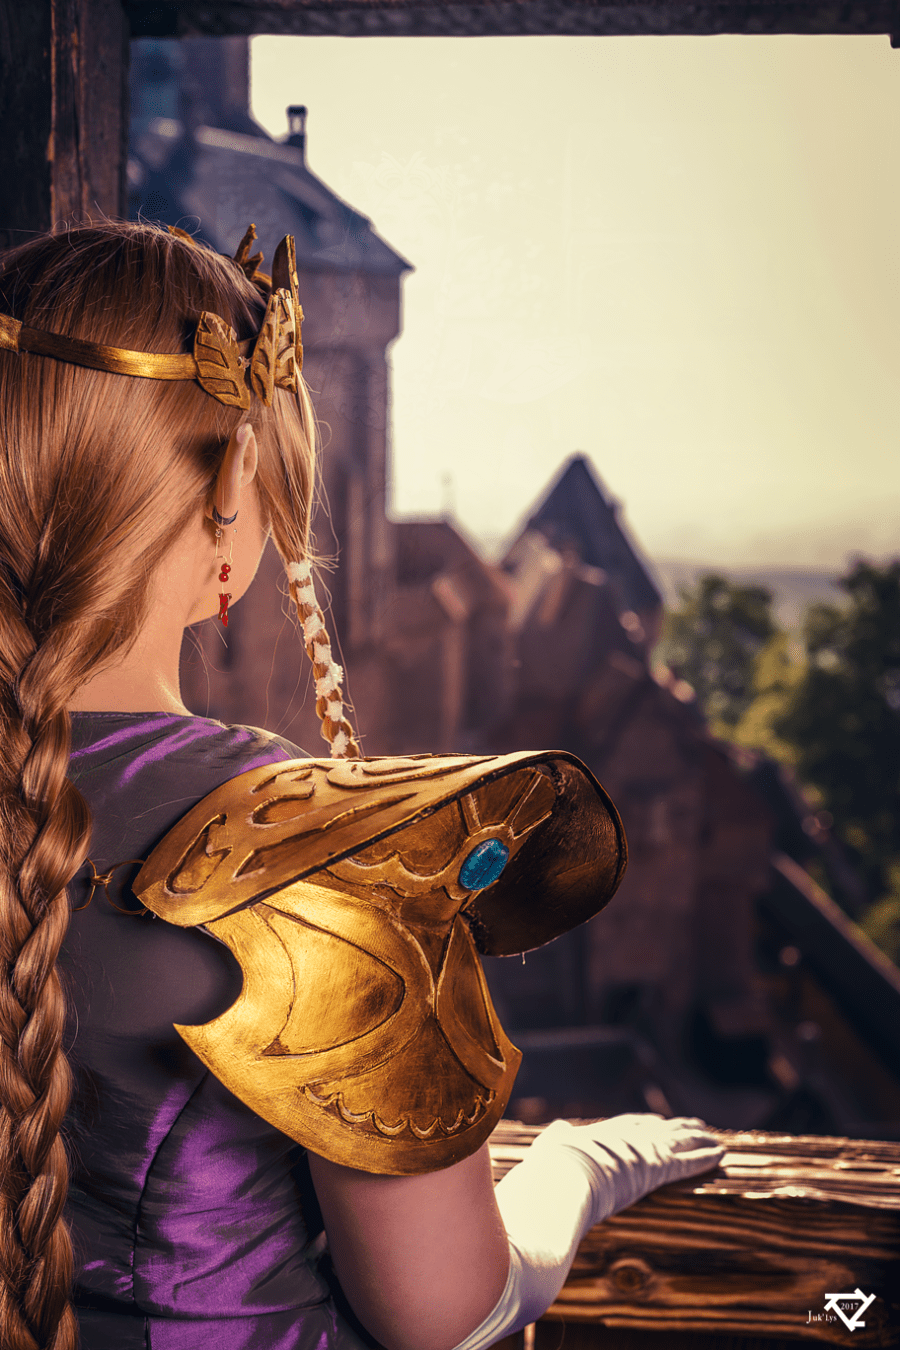 Zelda at Haut Koenigsbourg castle - France